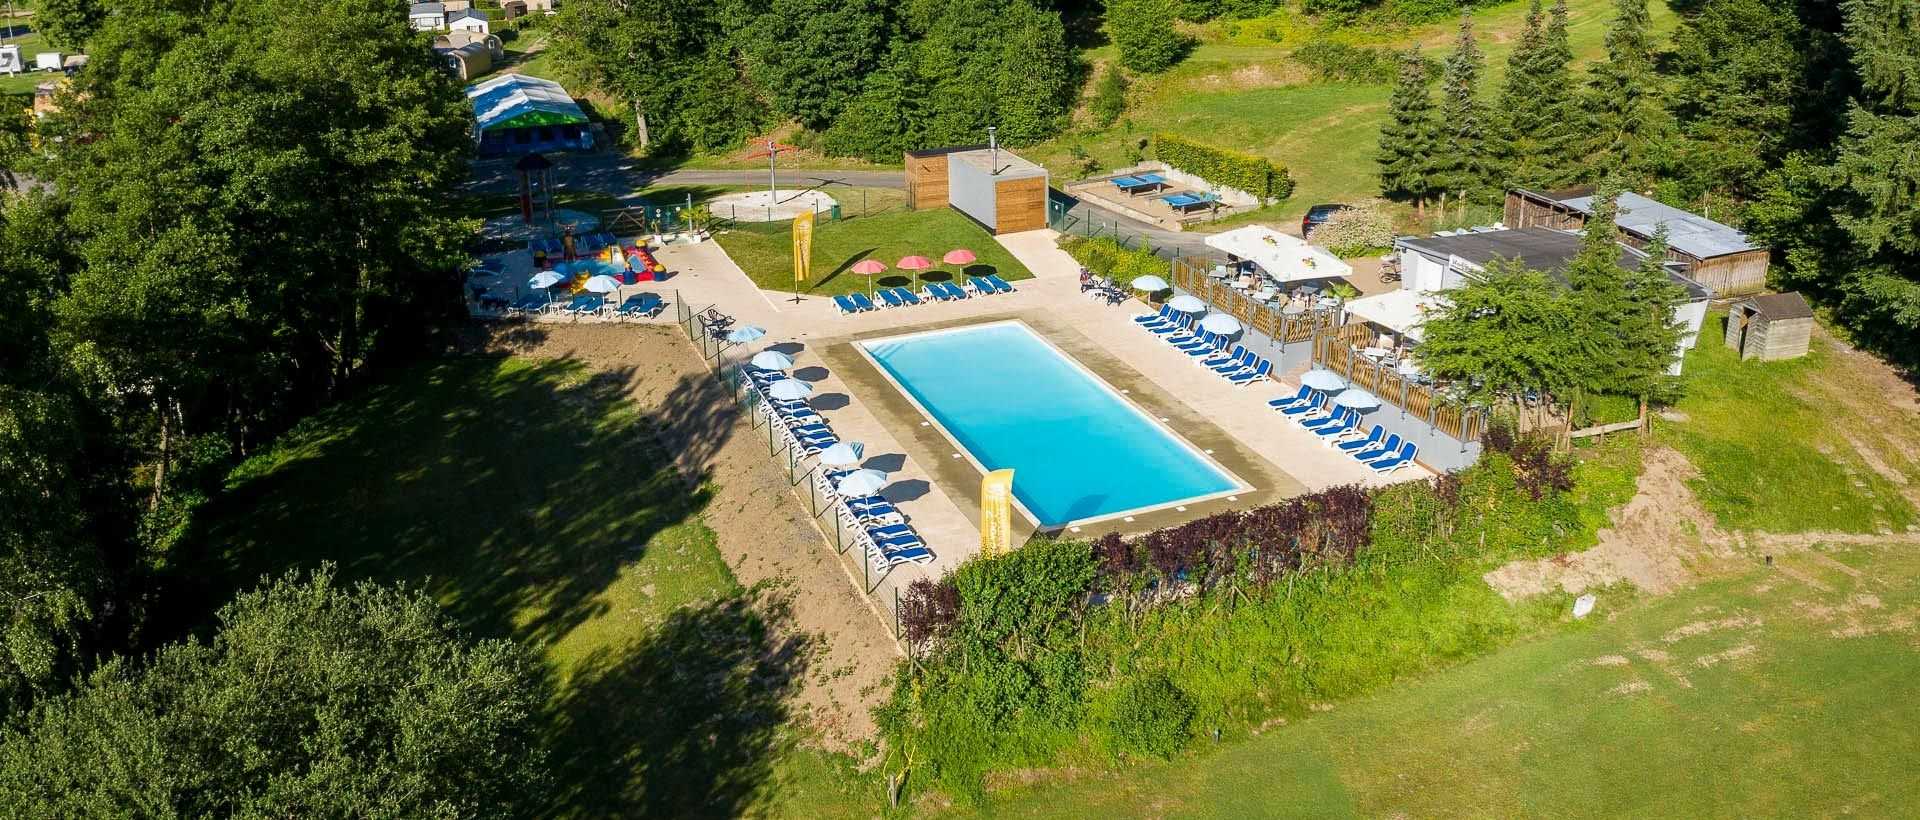 Camping Provincie Luxemburg